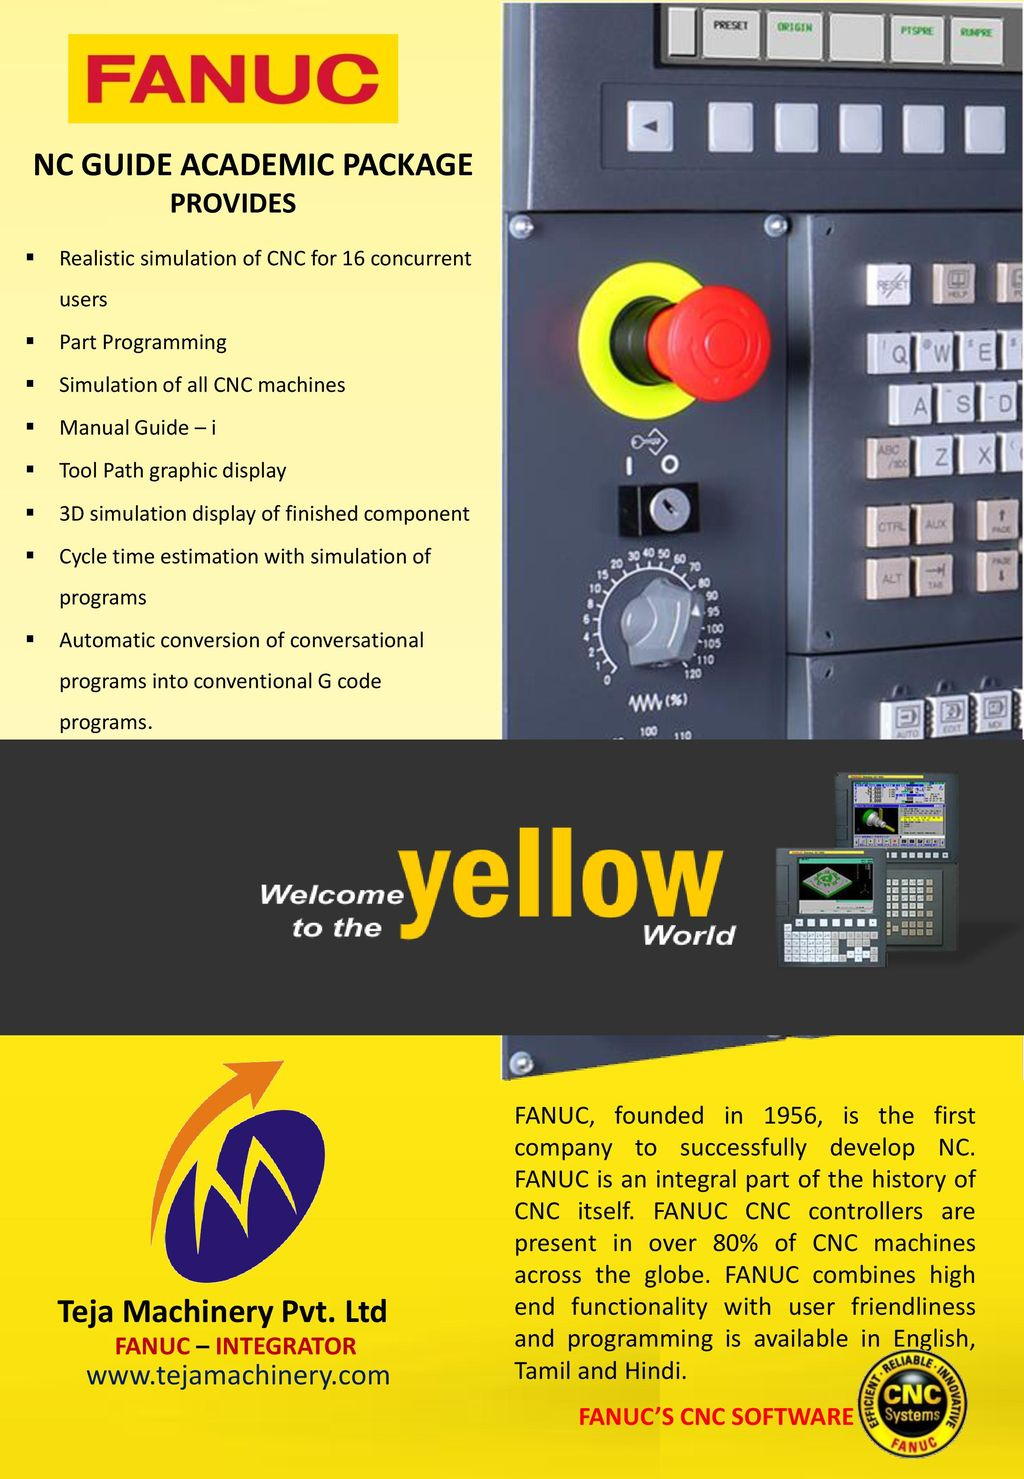 a NC GUIDE ACADEMIC PACKAGE Teja Machinery Pvt  Ltd provides